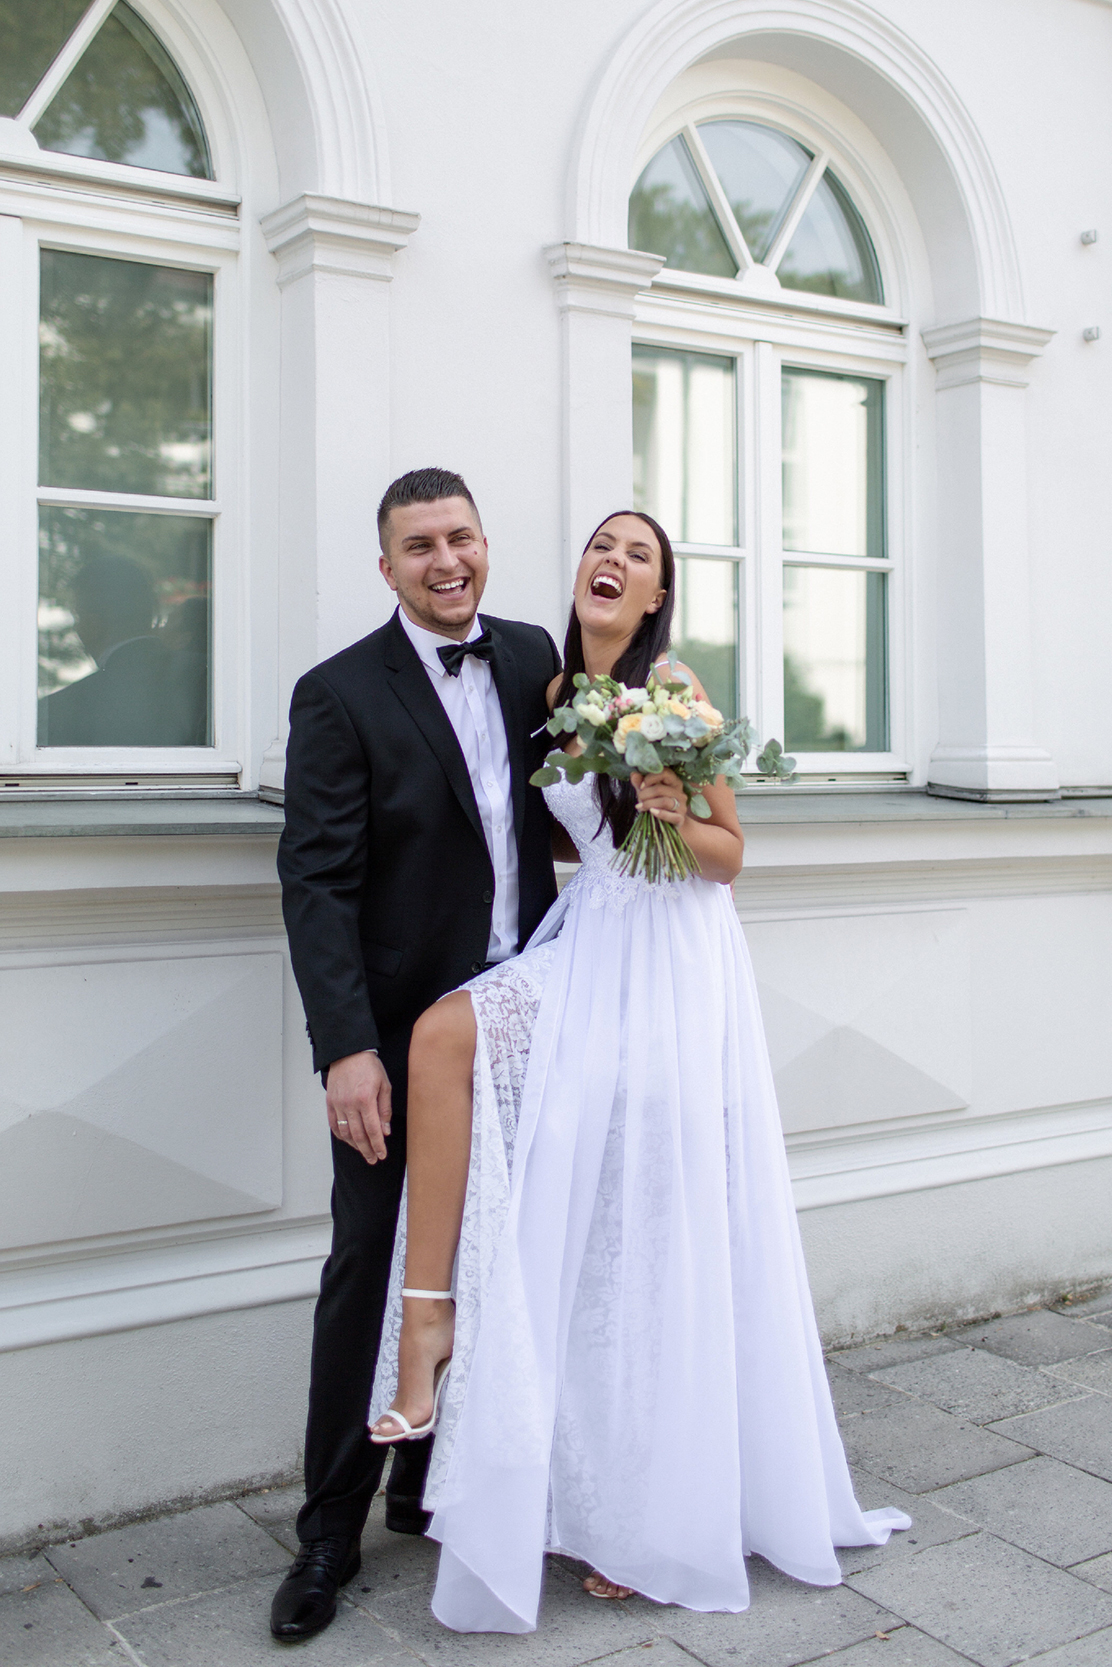 Standesamtliche Hochzeit, Civil Wedding, We said yes!